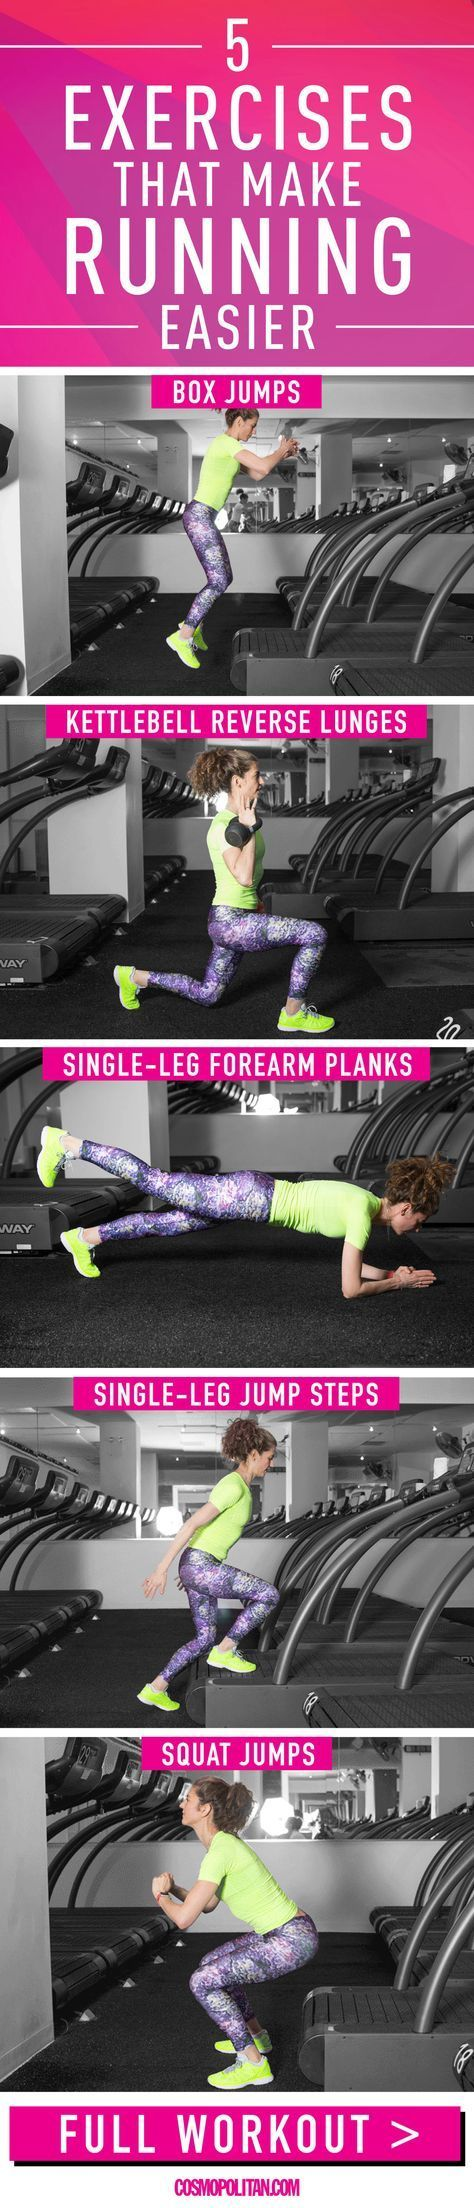 5 MOVES TO MAKE RUNNING EASIER: Your legs and butt will get sOoOo strong with these moves! if you want to be a better runner (i.e., make every stride feel less laborious), these moves can help by improving your strength, stability, and power, says Debora Warner, founder of Mile High Run Club, a fitness studio dedicated to running in New York City. Click through for the full workout info, running tips, and more fitness ideas! Plus, you'll find instructional gifs that teach you how to do each…